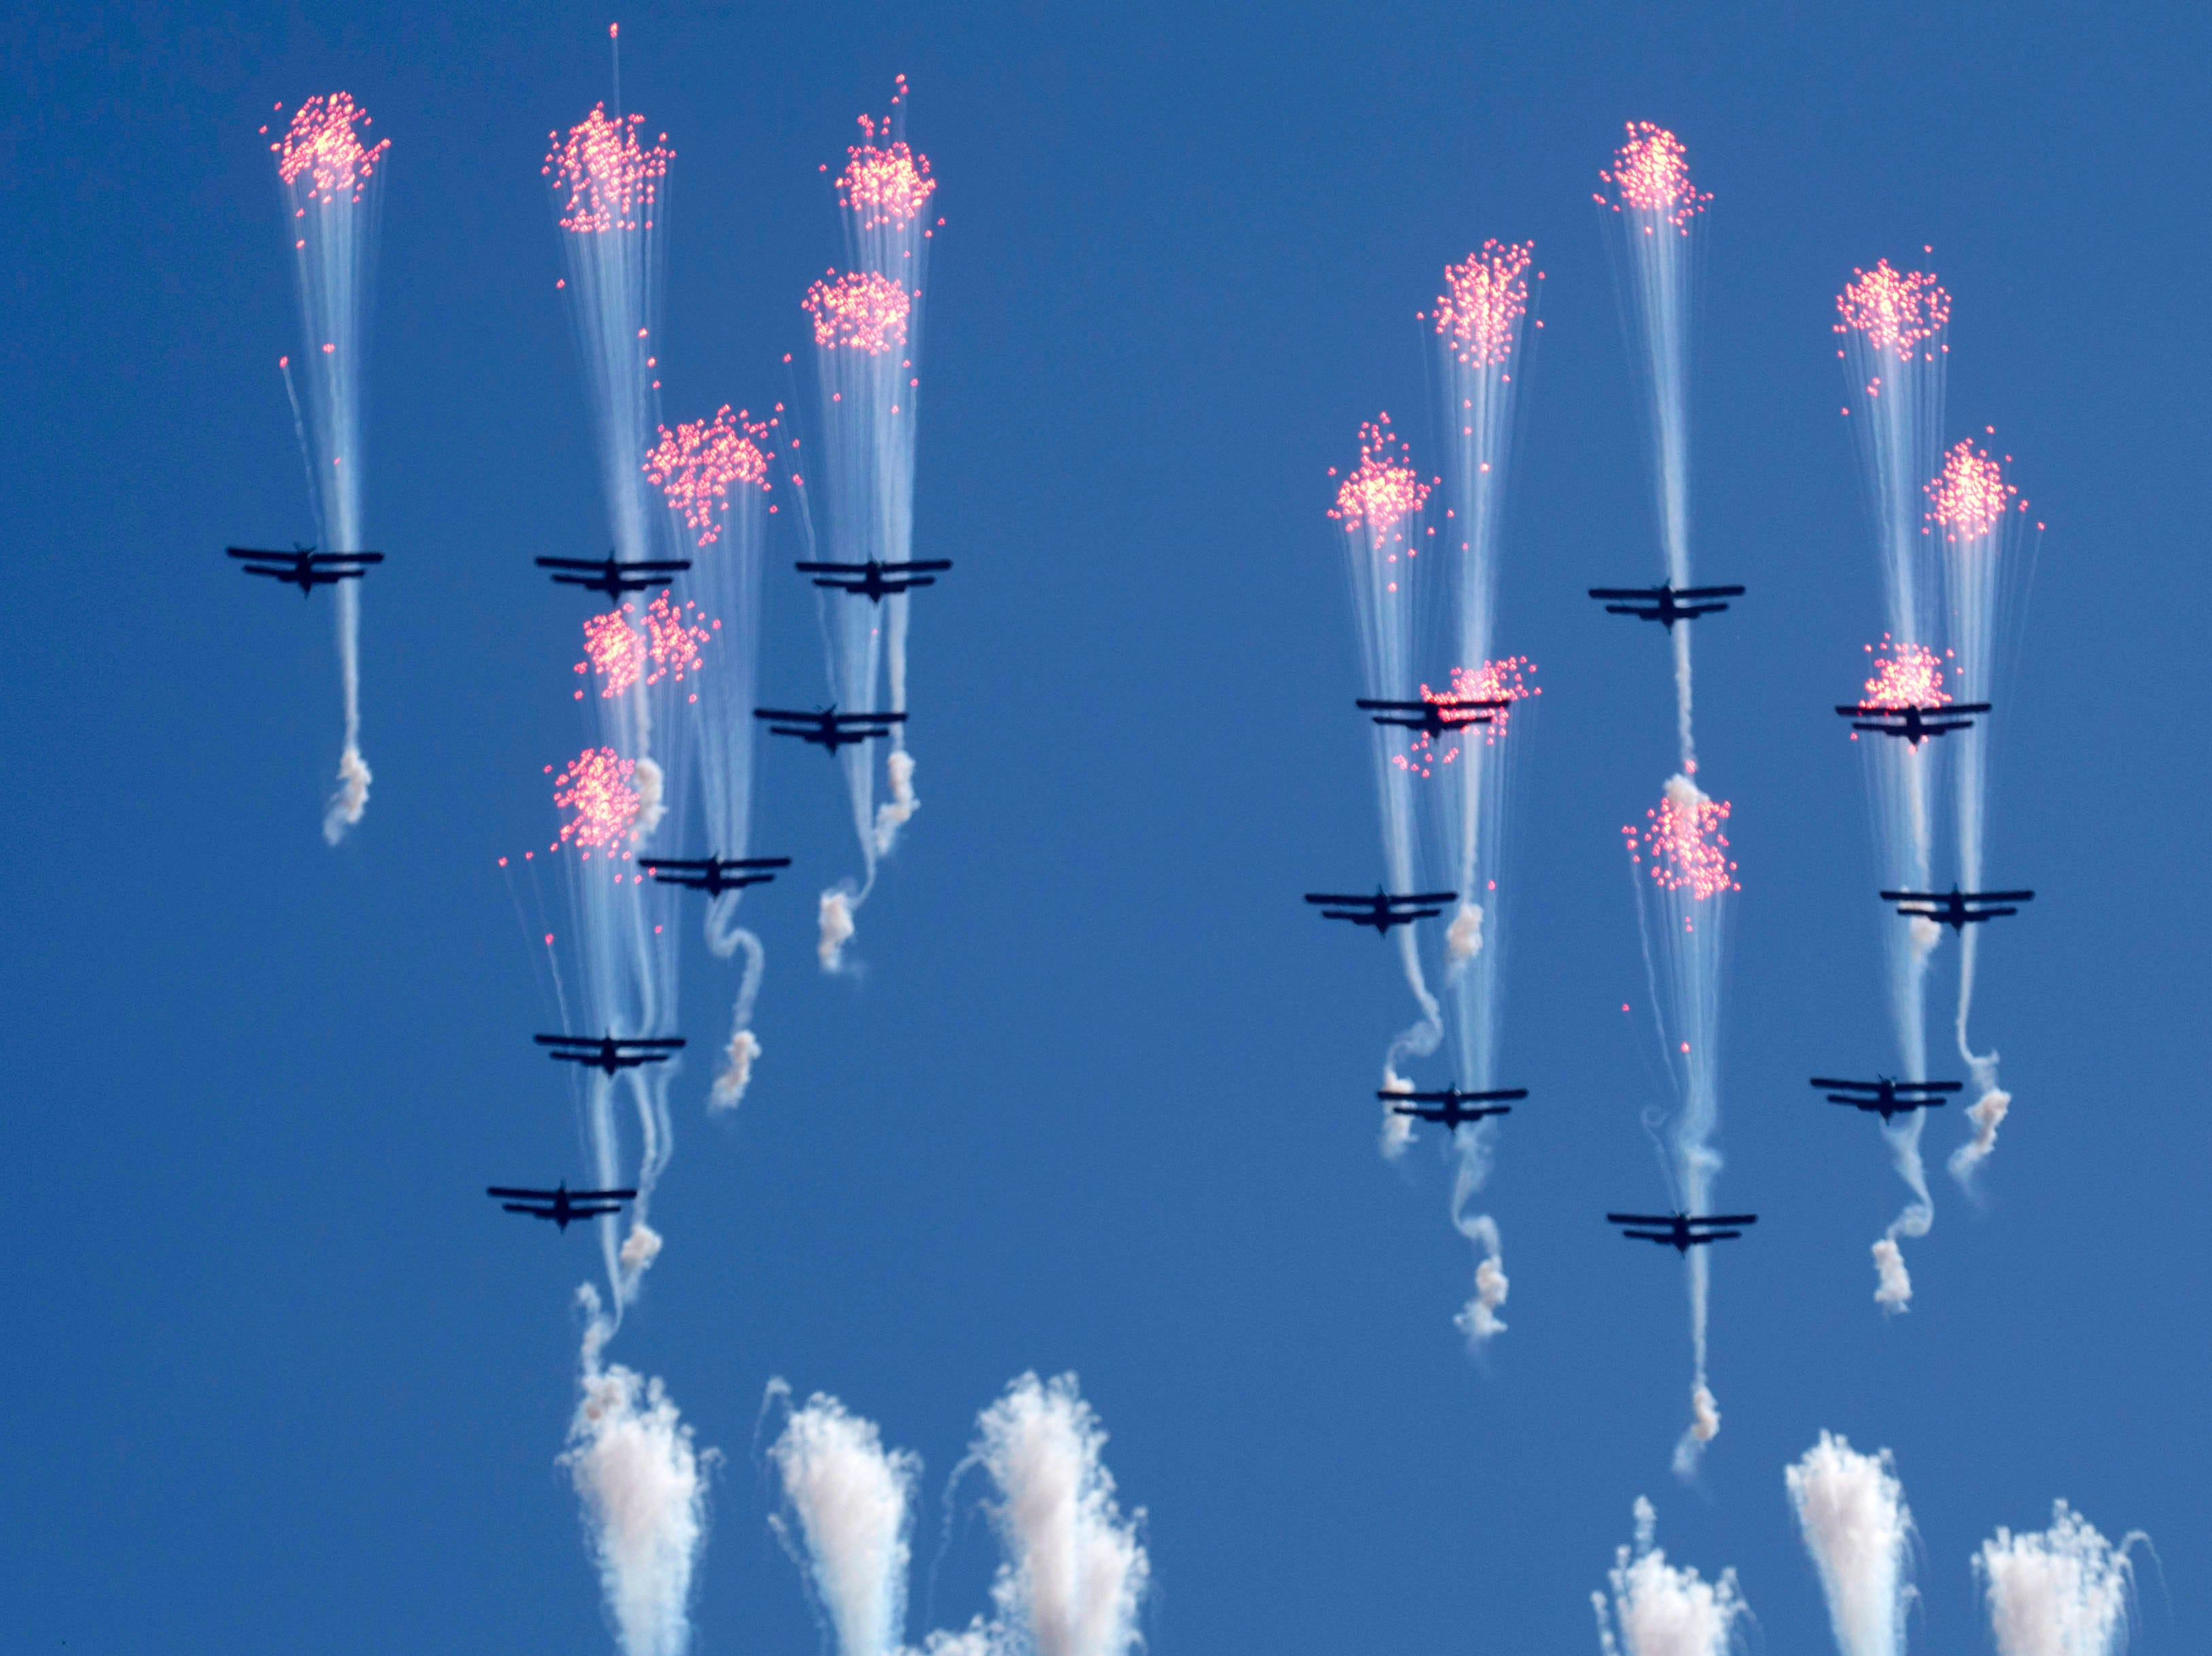 Airplanes forming the number 70 fly in formation and fire flares during a parade for the 70th anniversary of North Korea's founding day in Pyongyang, North Korea, Sunday, Sept. 9, 2018. North Korea staged a major military parade, huge rallies and will revive its iconic mass games on Sunday to mark its 70th anniversary as a nation.